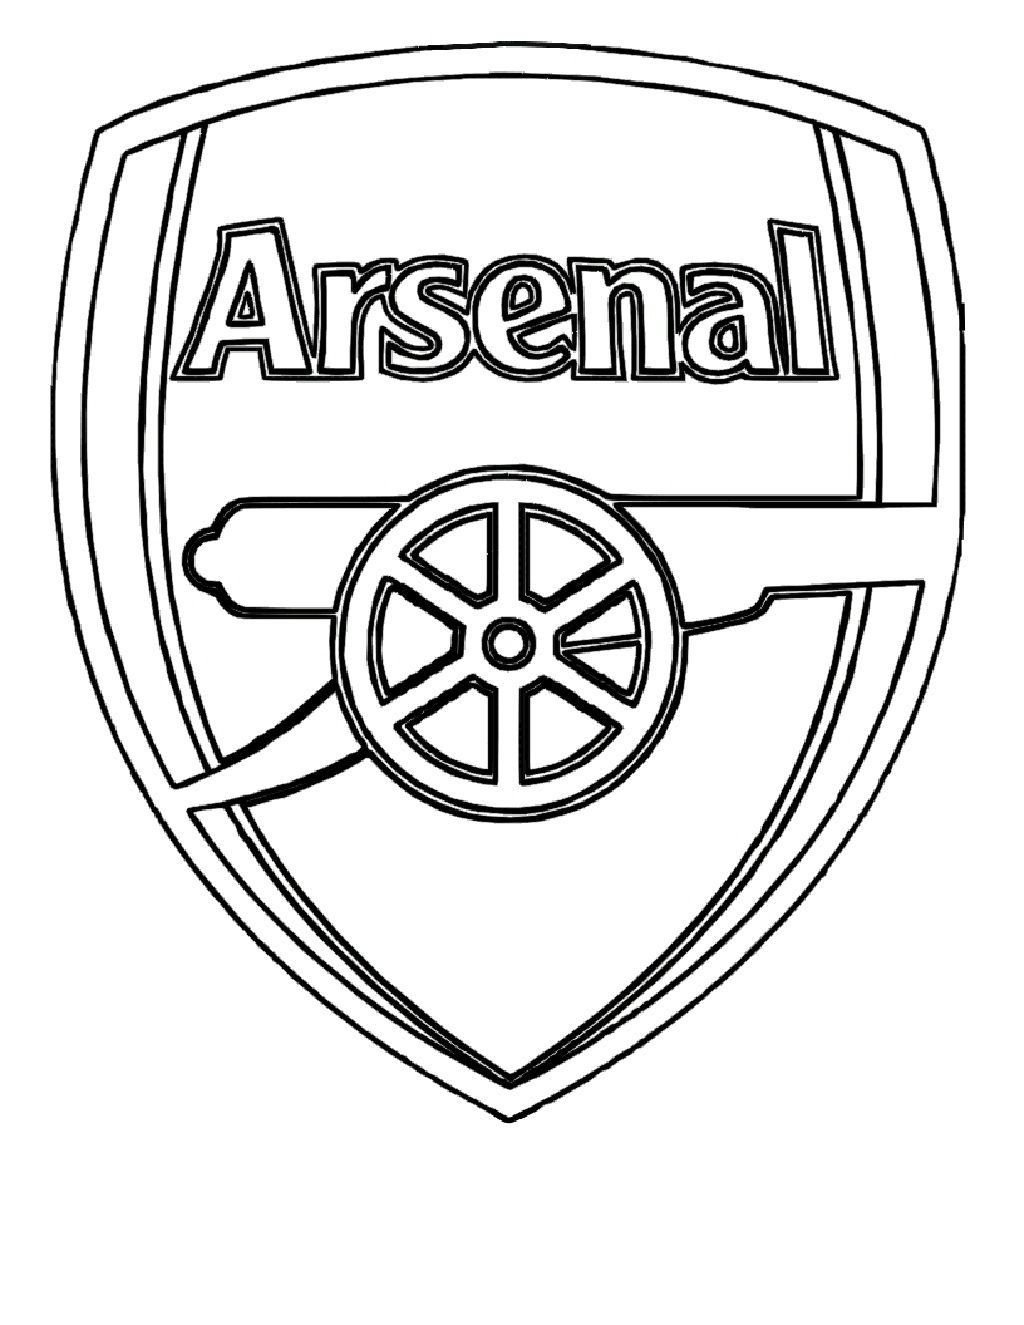 1024x1325 arsenal logo black and white afc soccer logo, logo arsenal